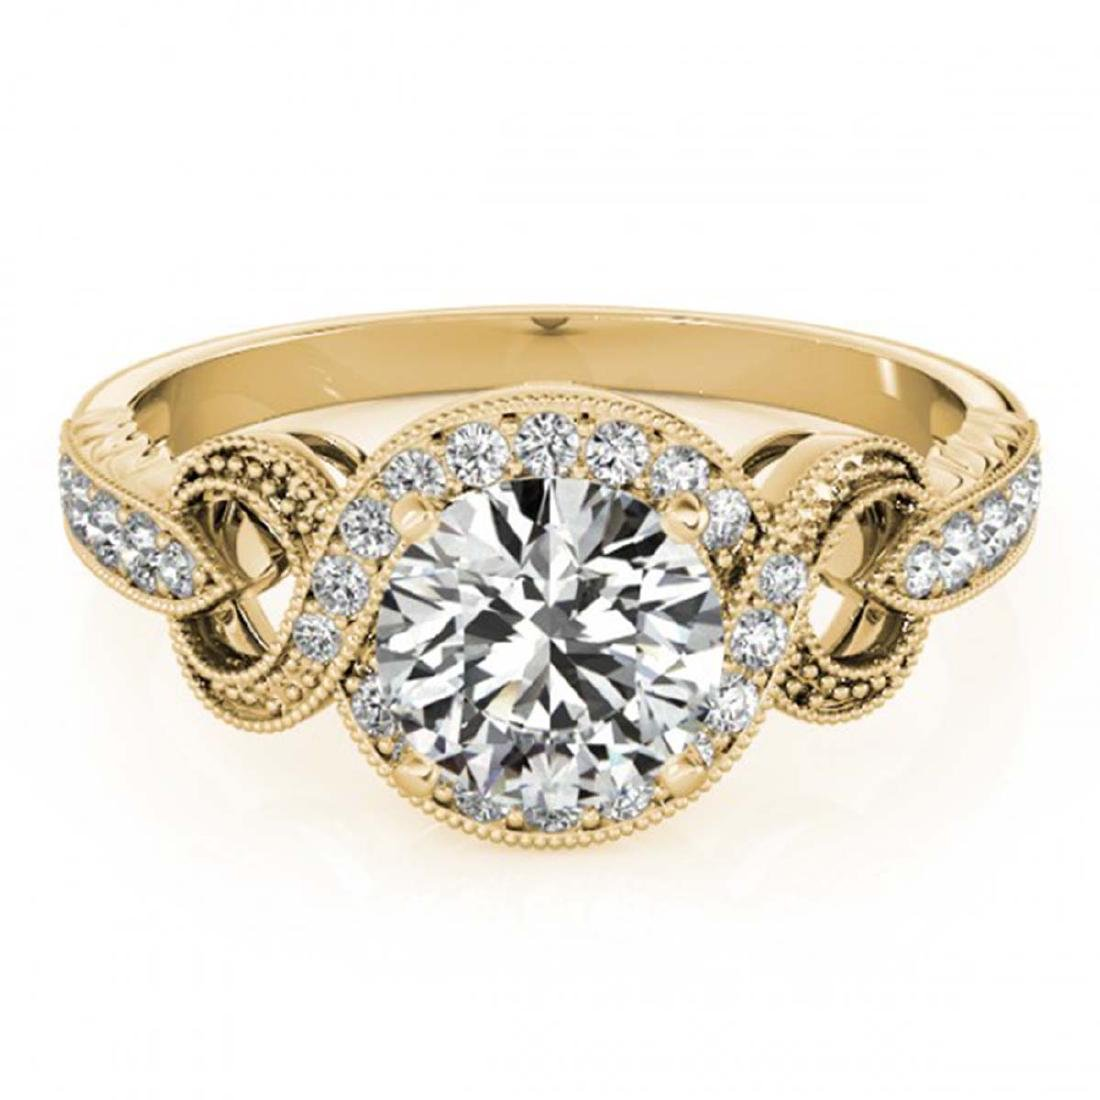 1.33 ctw VS/SI Diamond Halo Ring 18K Yellow Gold -